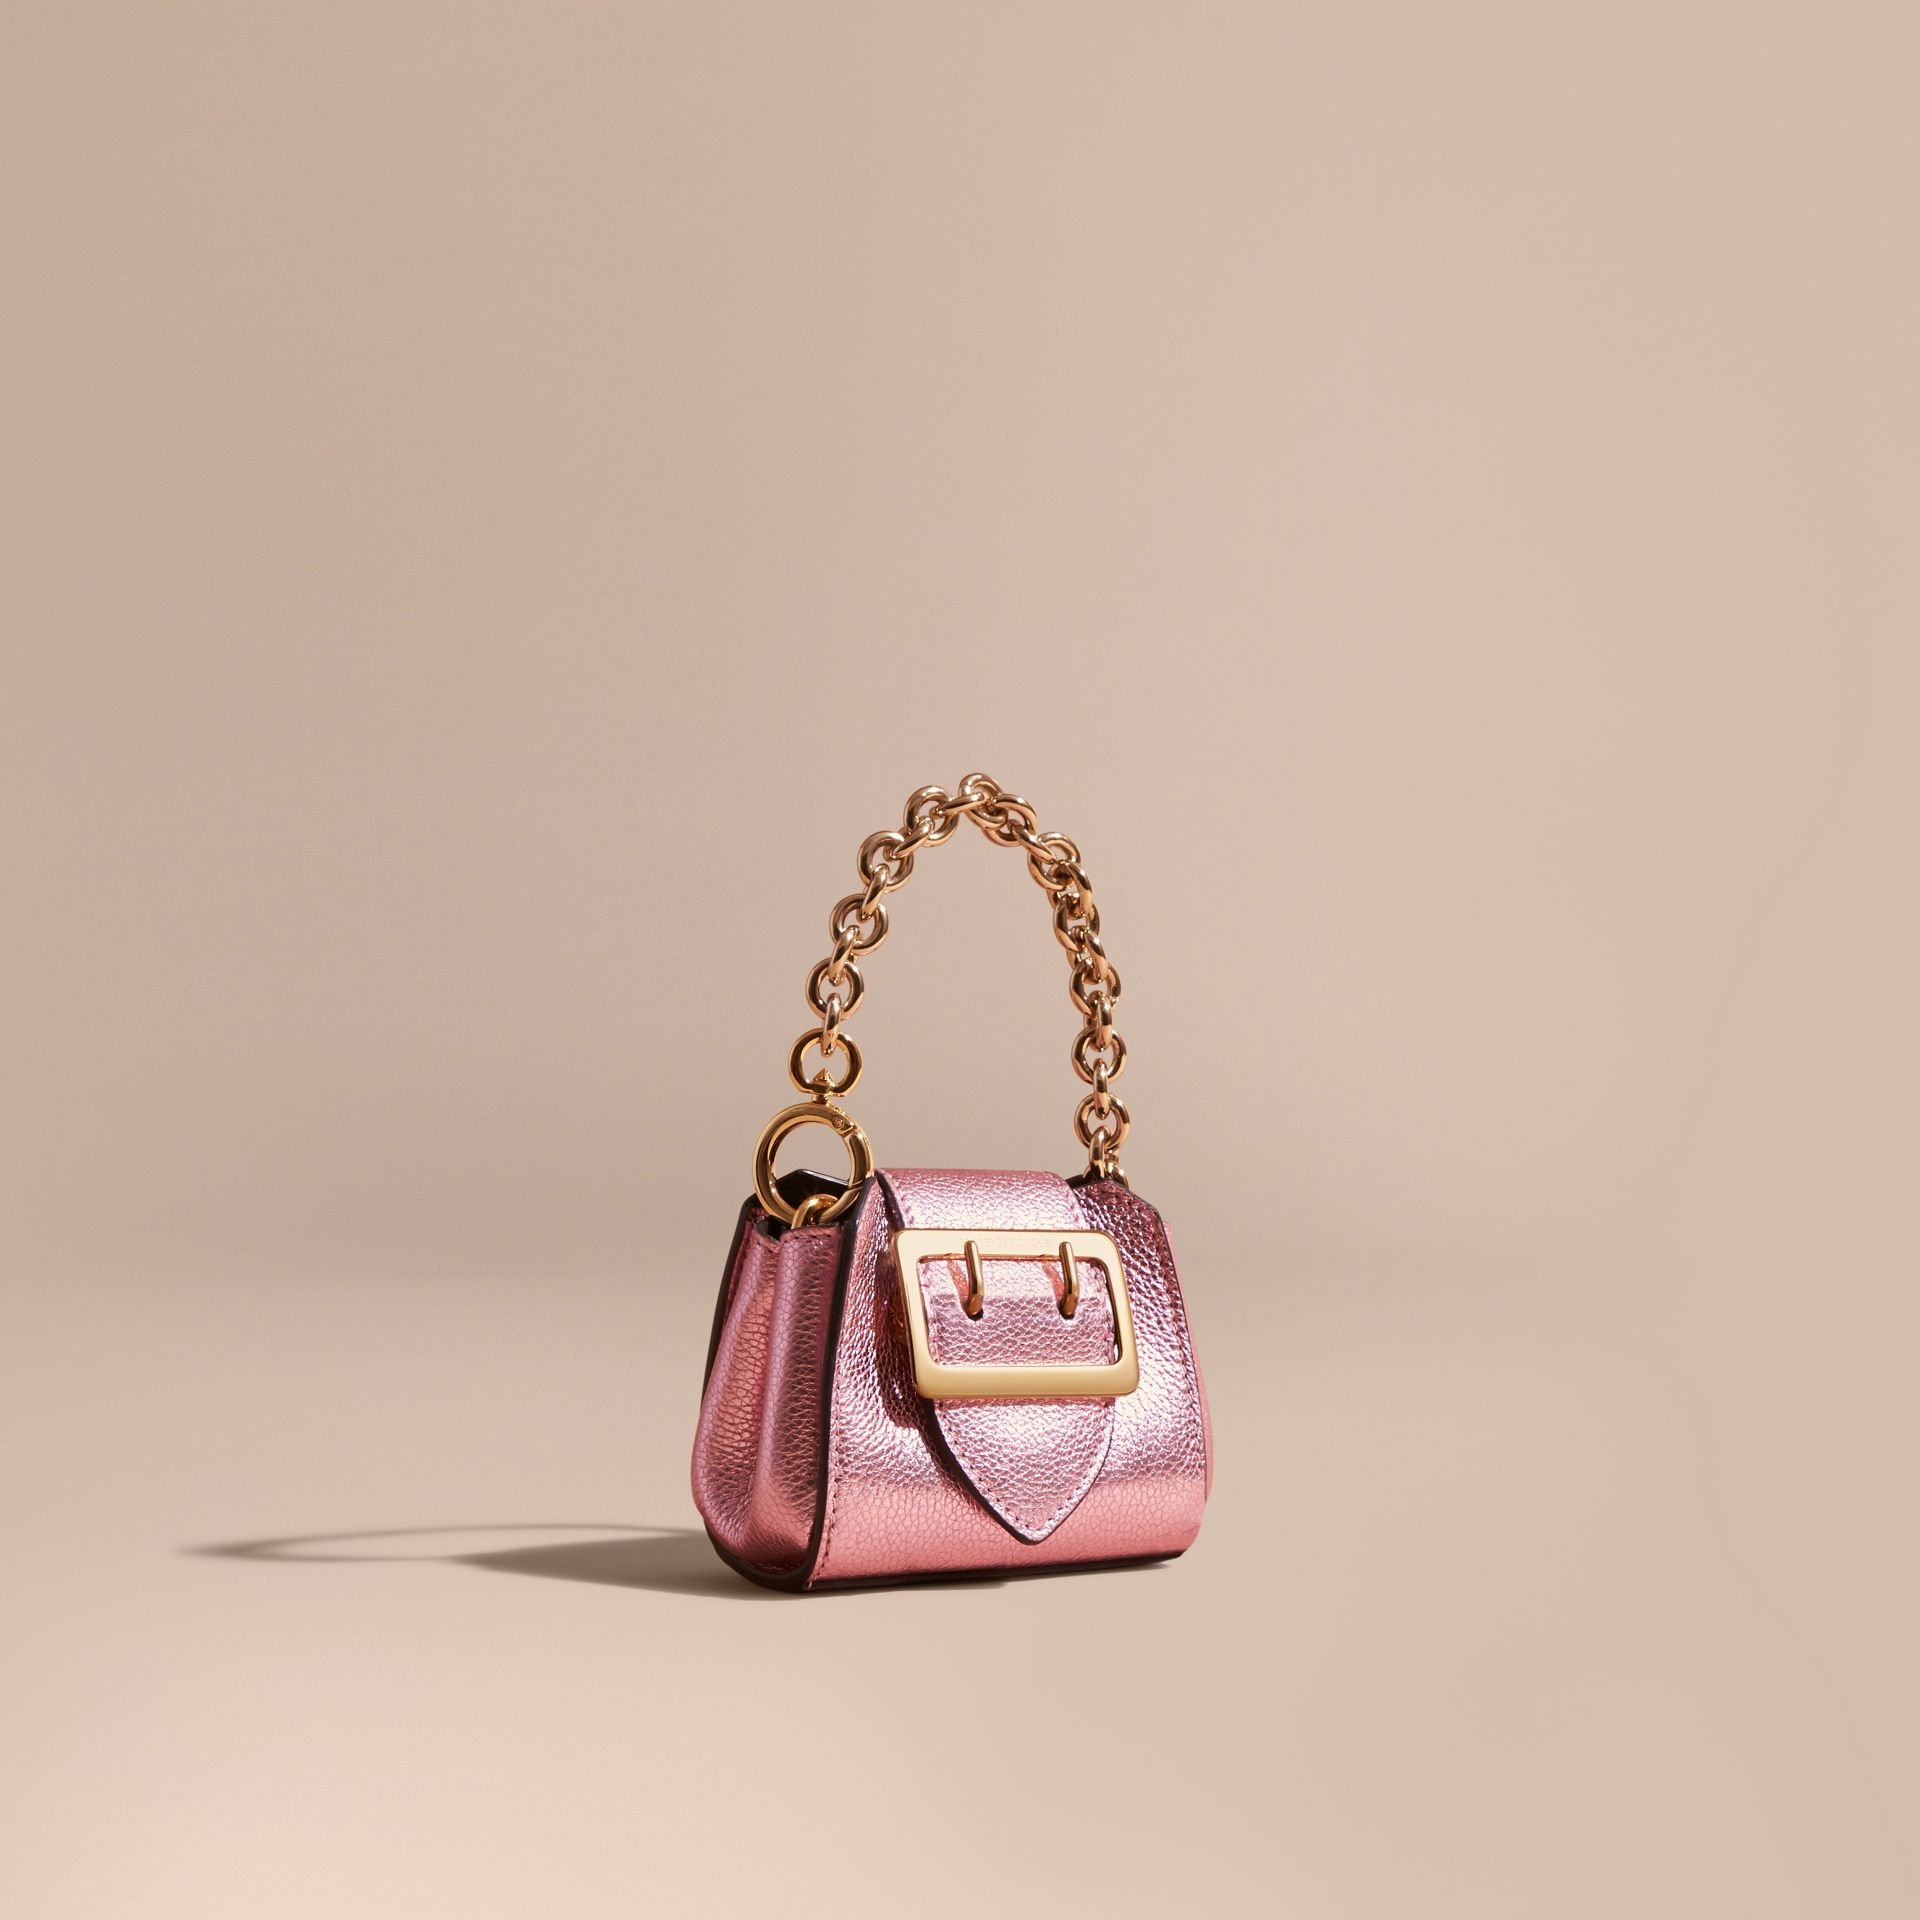 The Mini Buckle Tote Charm in Metallic Leather in Pale Orchid - gallery image 1